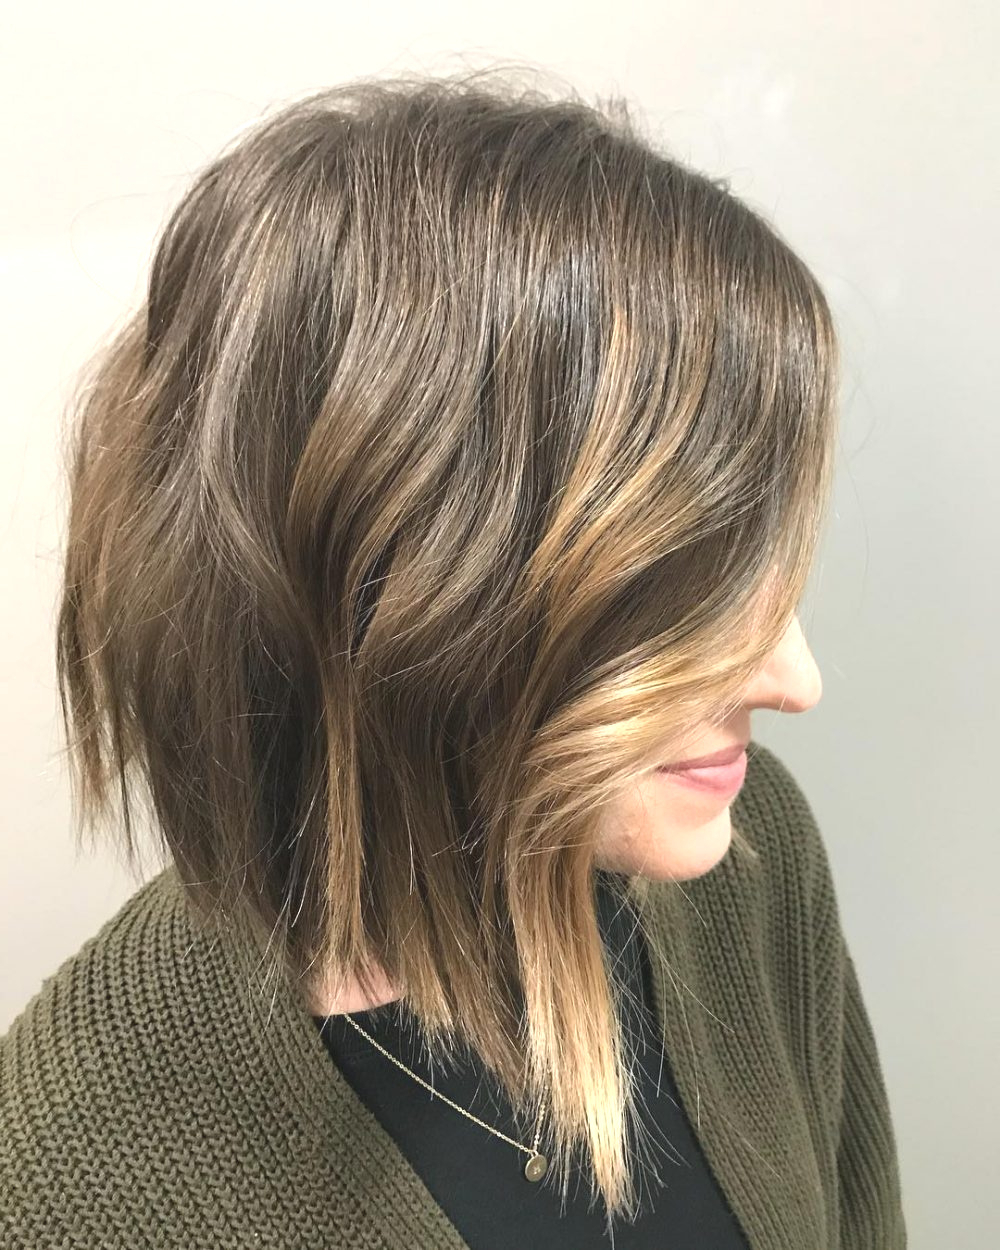 Fashion : Shoulder Length Choppy Bob The New 21 Textured Regarding Shoulder Length Choppy Hairstyles (View 5 of 20)